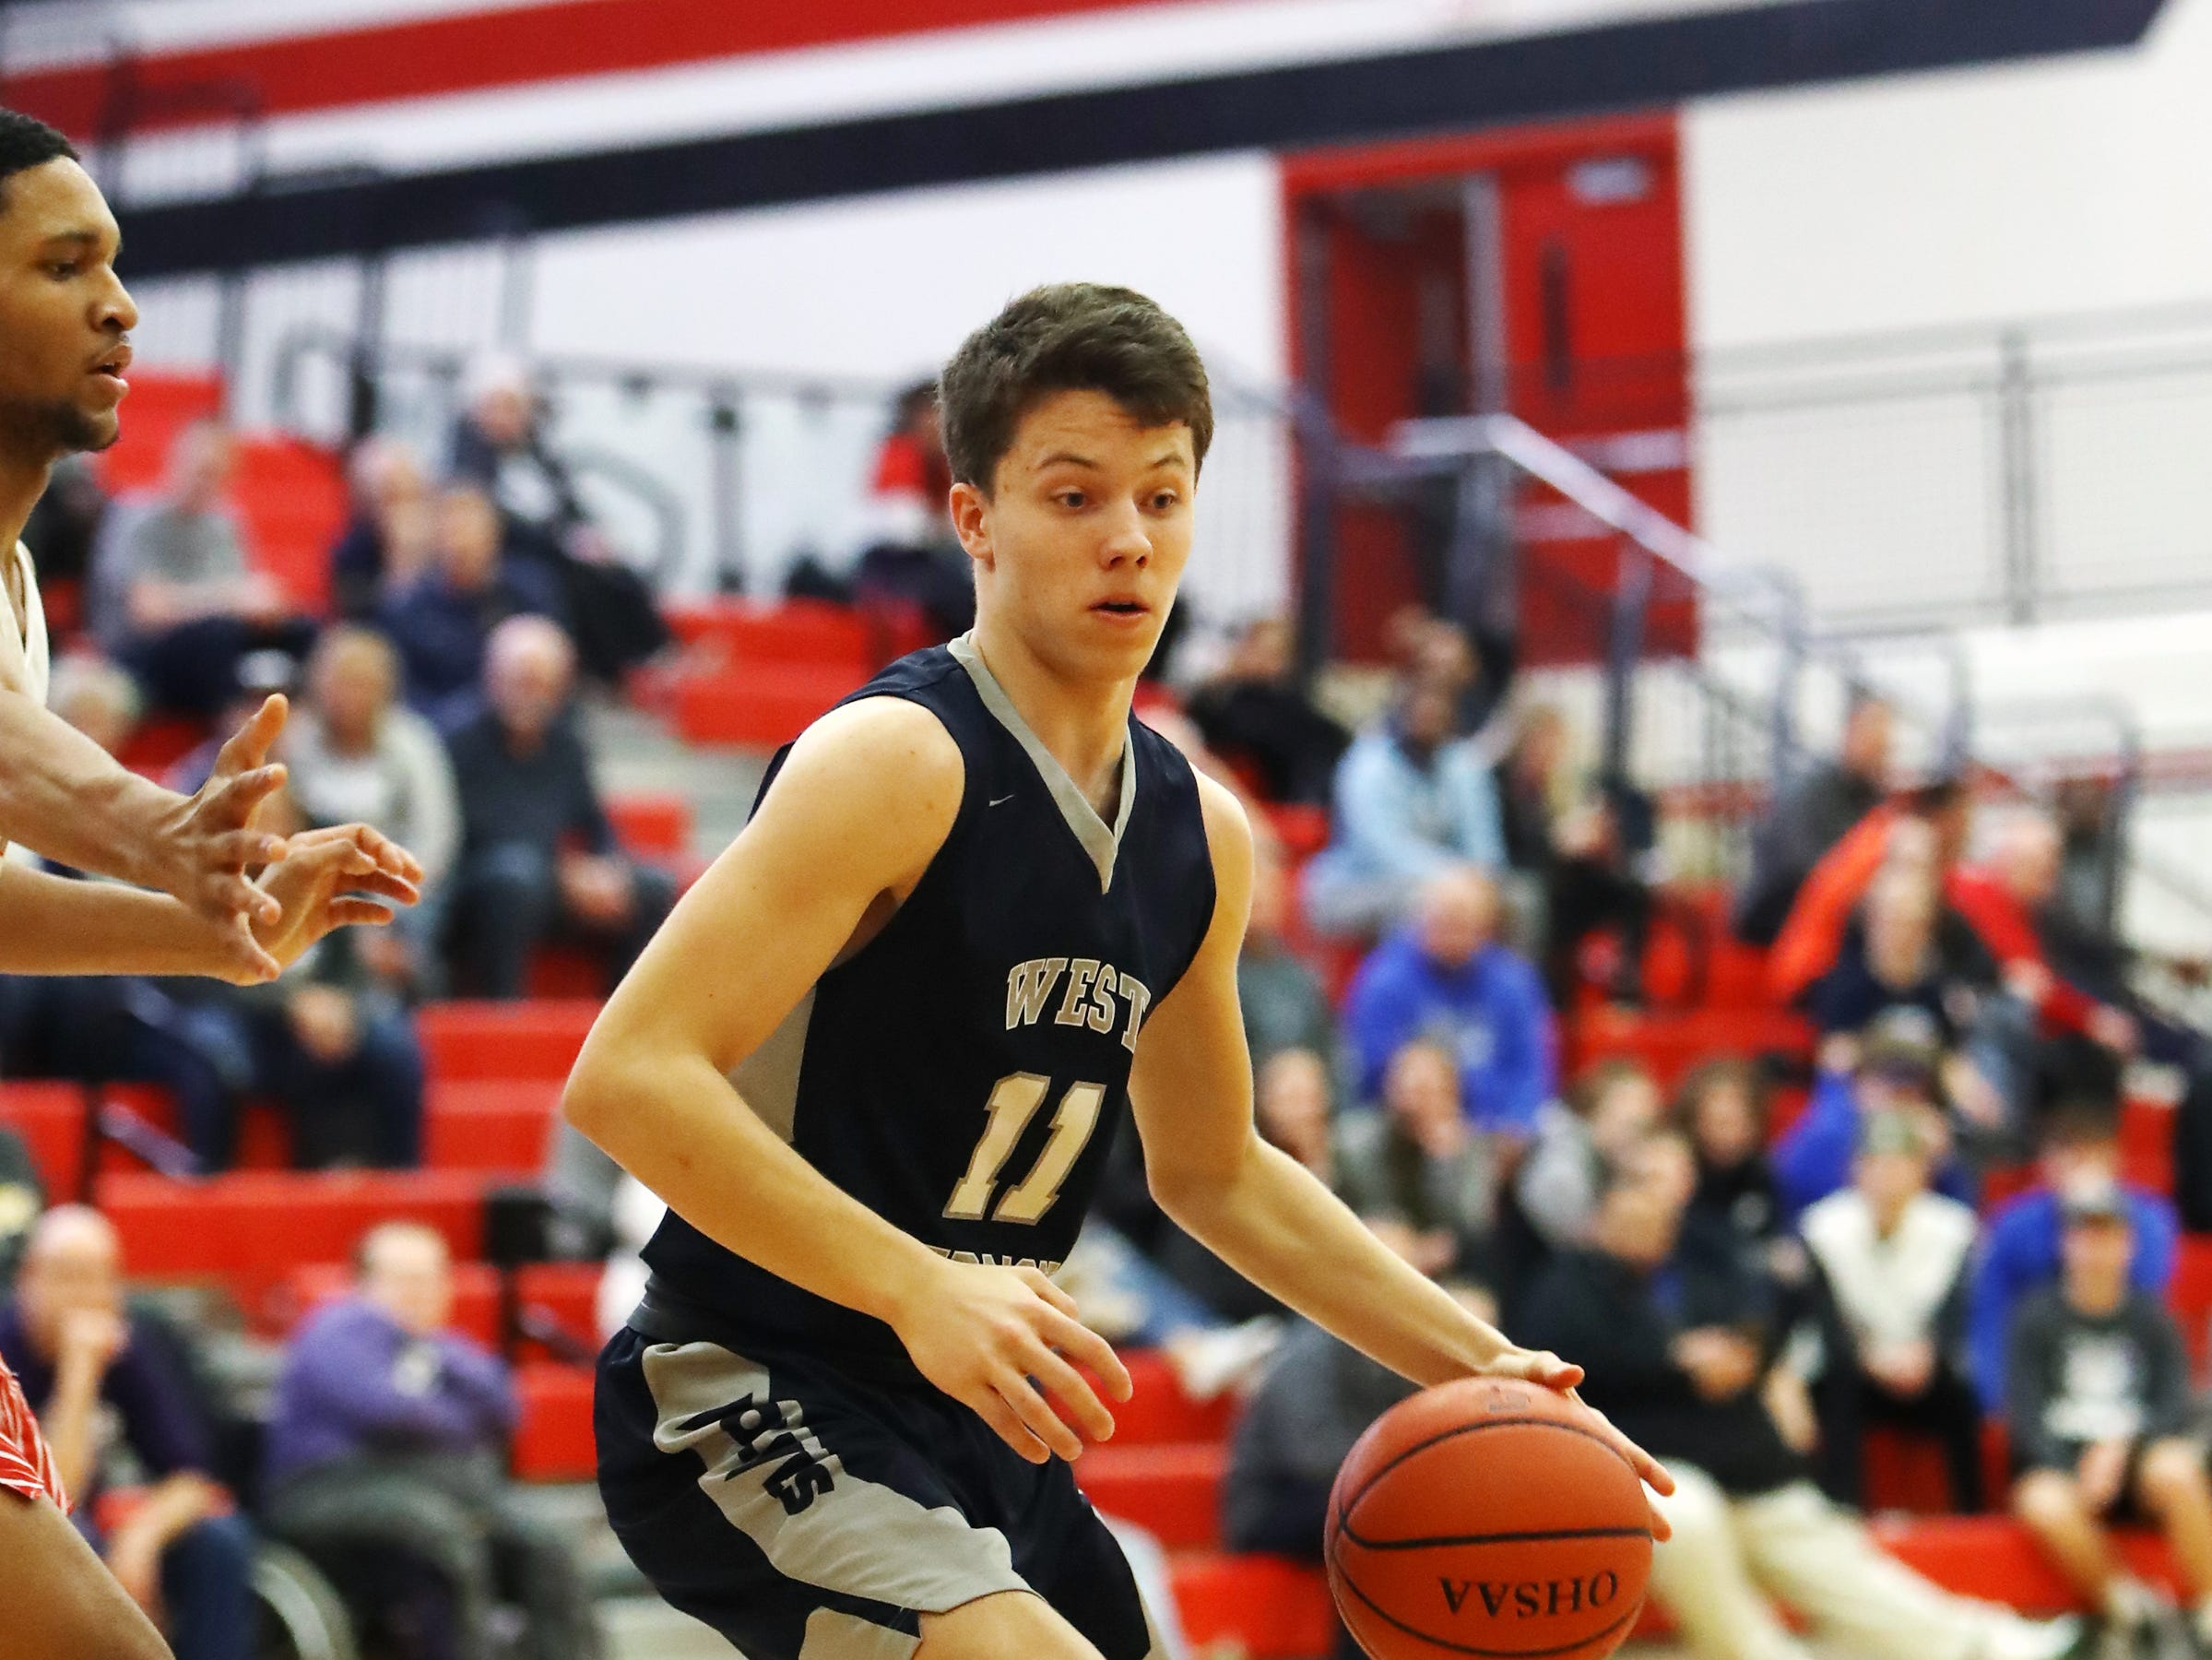 West Clermont guard Hunter Eads looks to get past the Fairfield Indians defense.